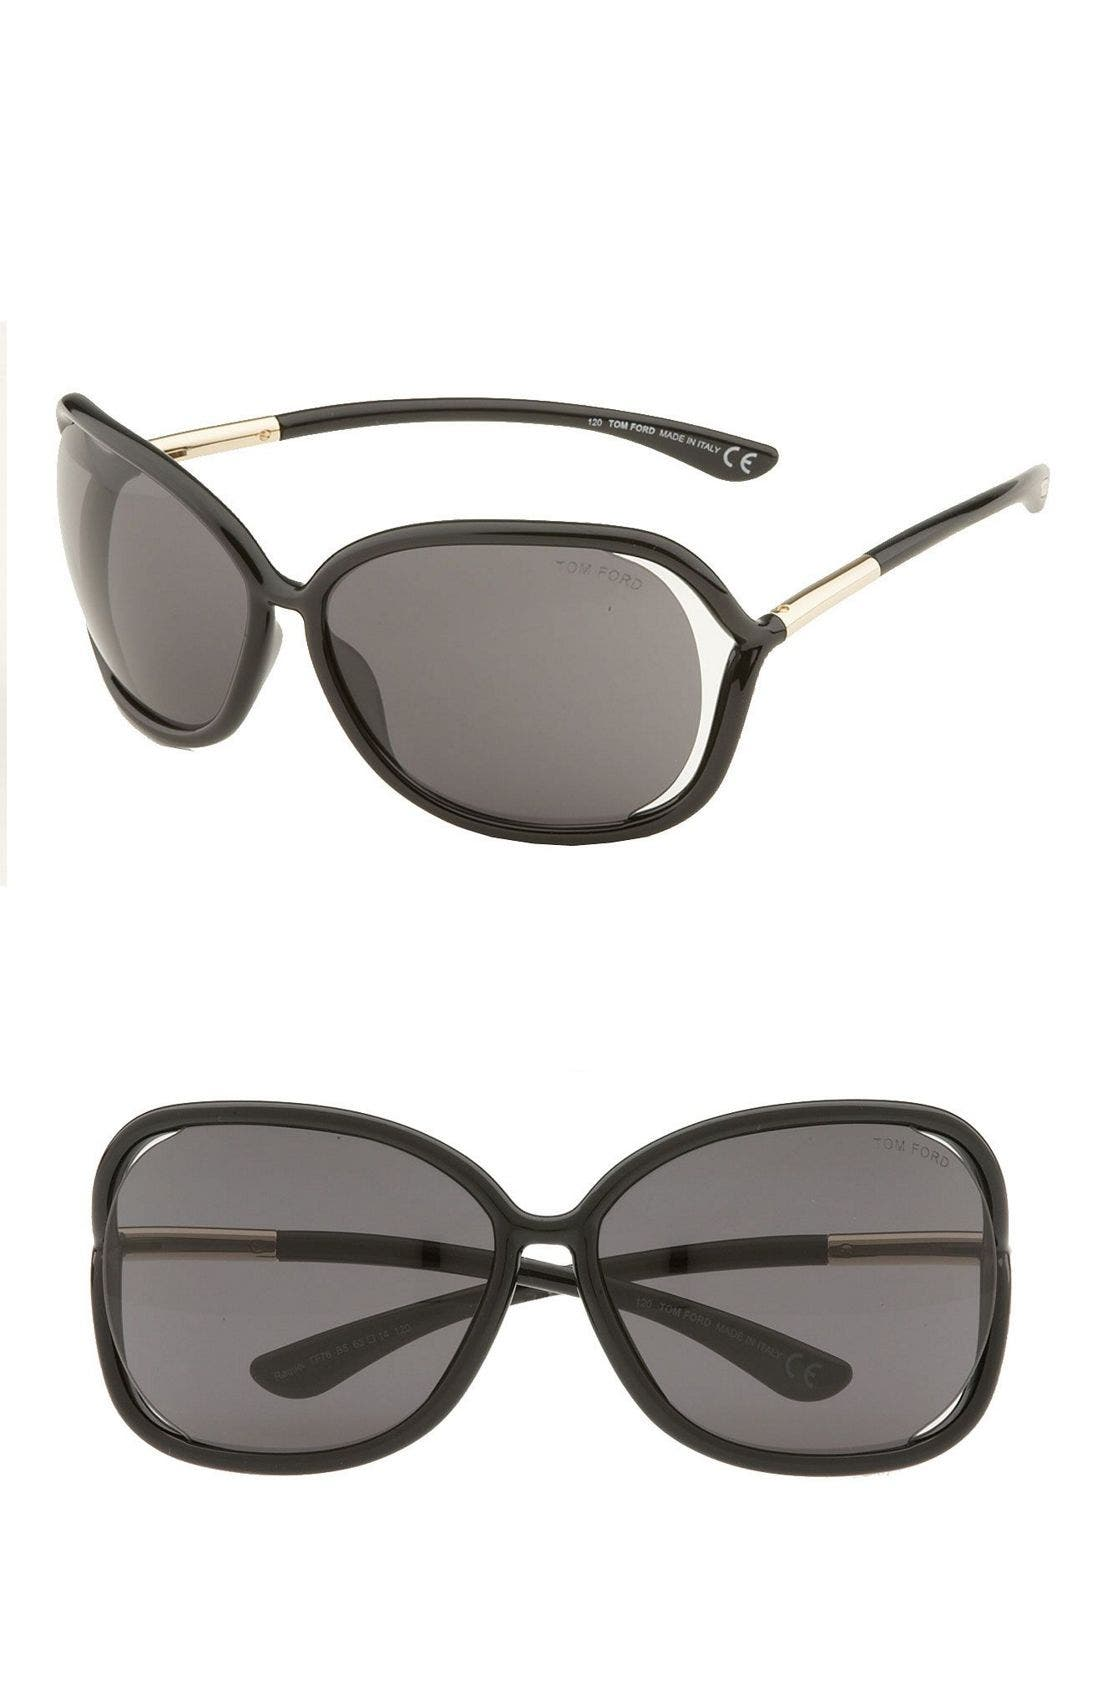 Main Image - Tom Ford 'Raquel' 63mm Oversized Open Side Sunglasses